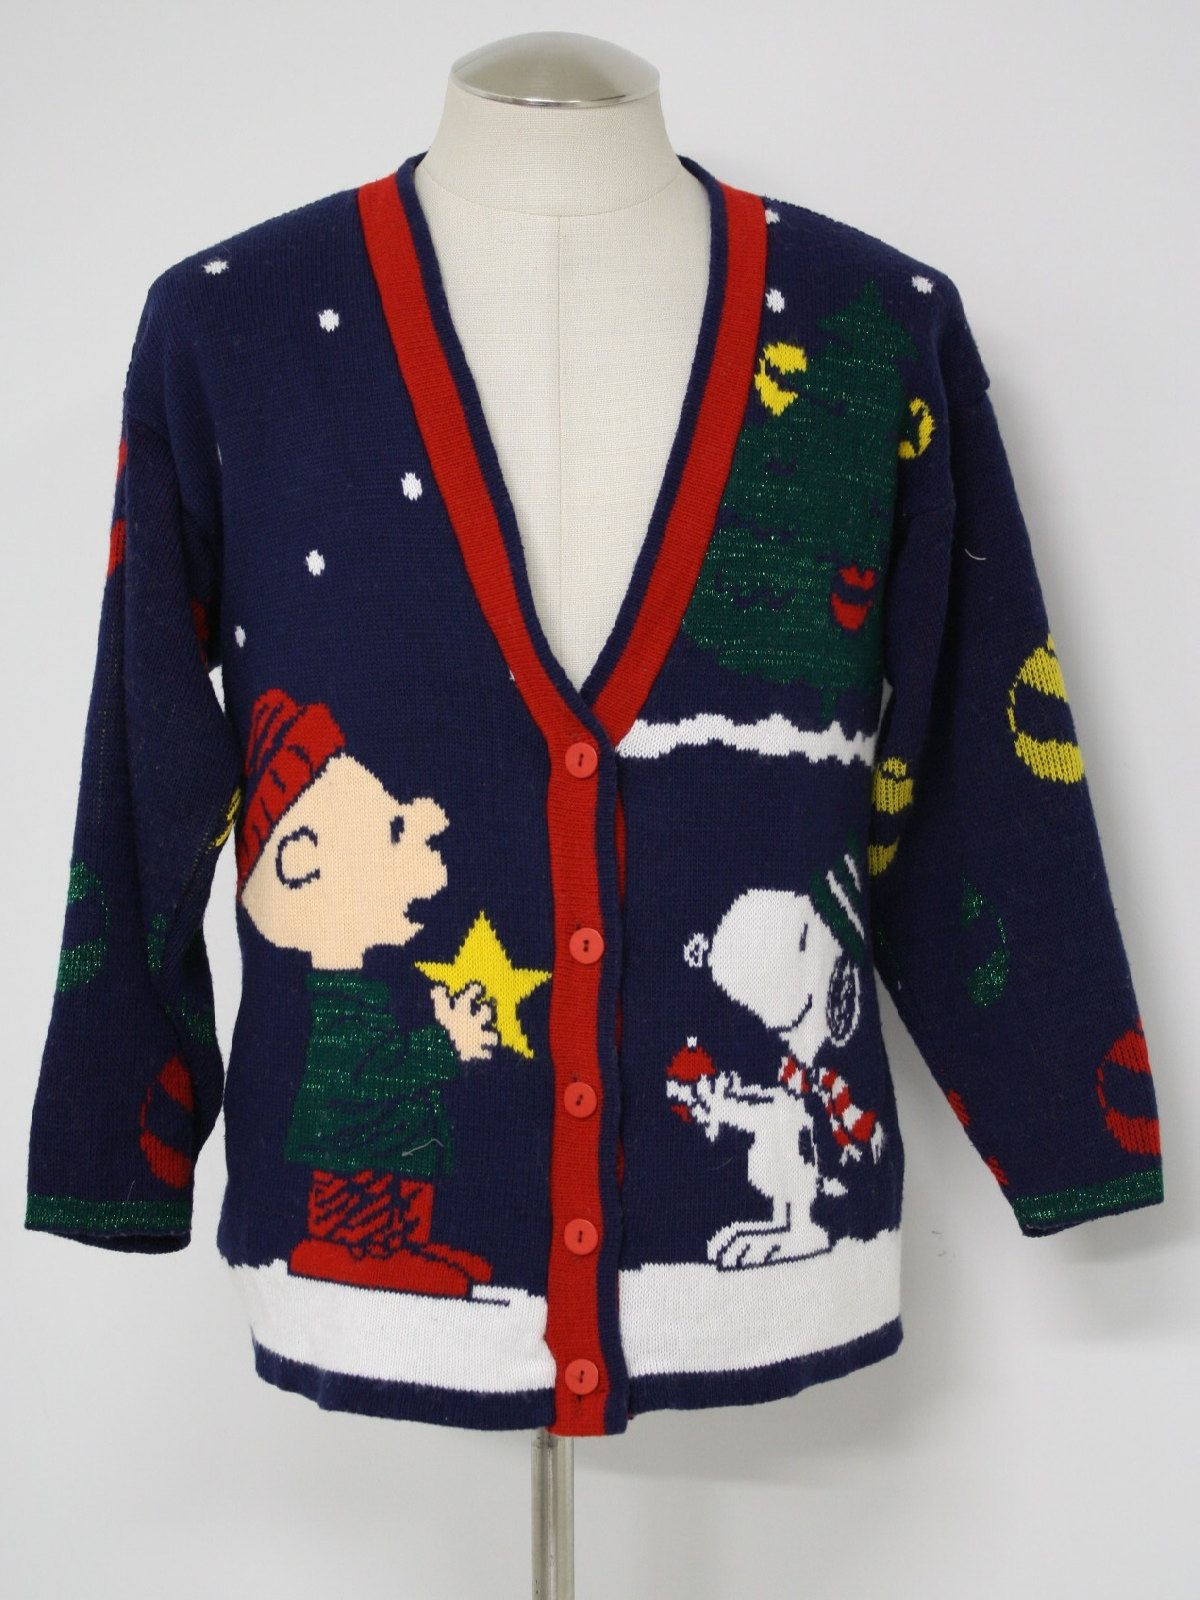 Retro 1980s Ugly Christmas Sweater 80s Vintage Snoopy And Friends